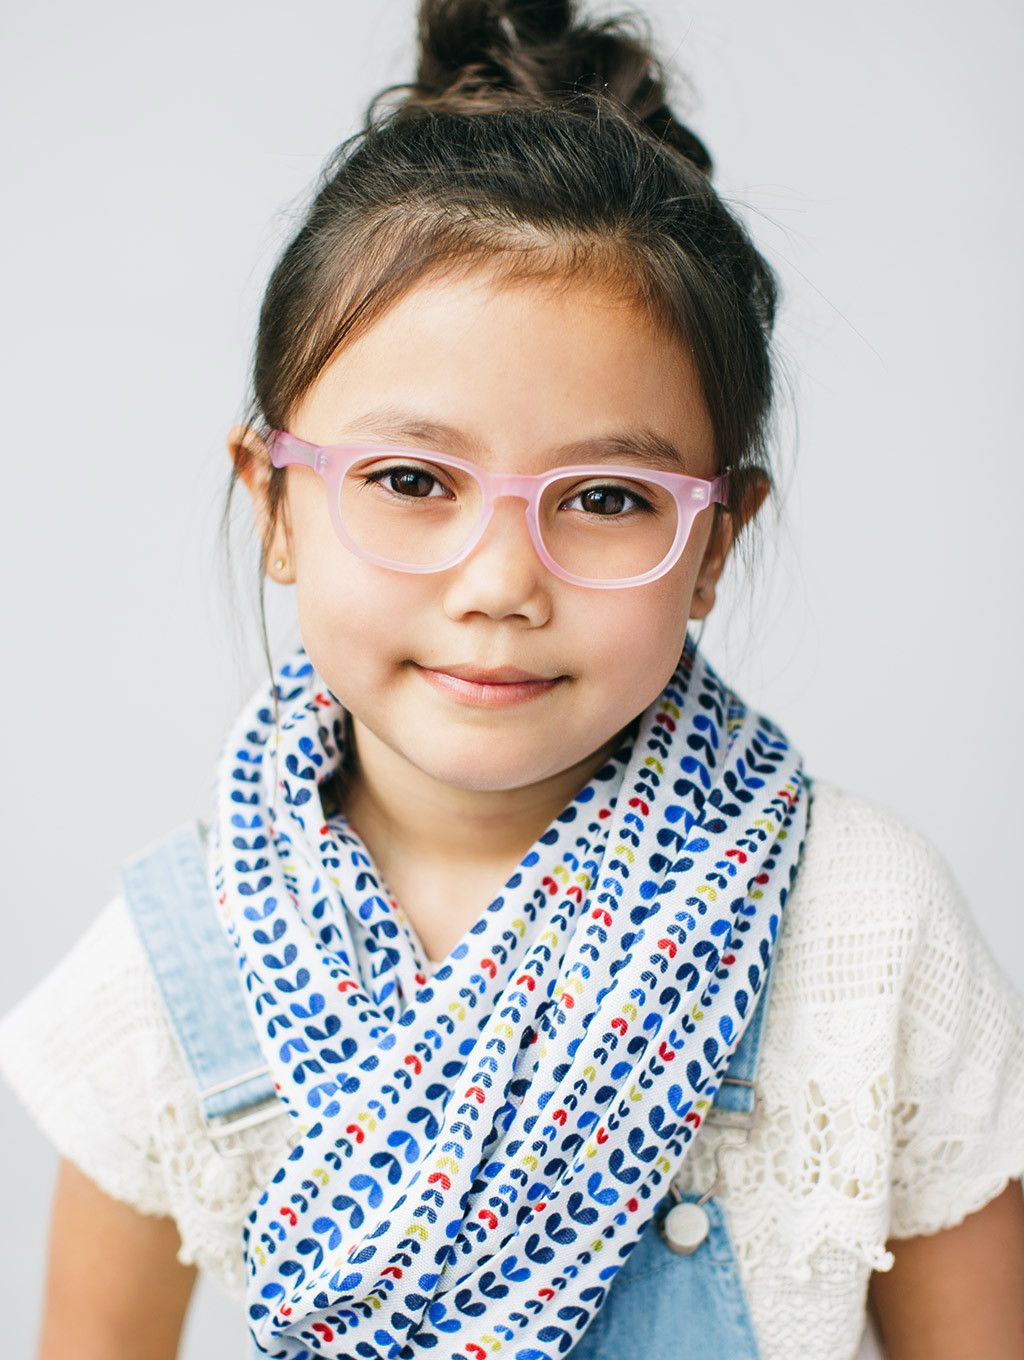 f4dcaabc7301 Buy fashionable girls glasses with a purpose. Blush pink round eyeglass  frames for kids by Jonas Paul Eyewear. Prescription lenses included!